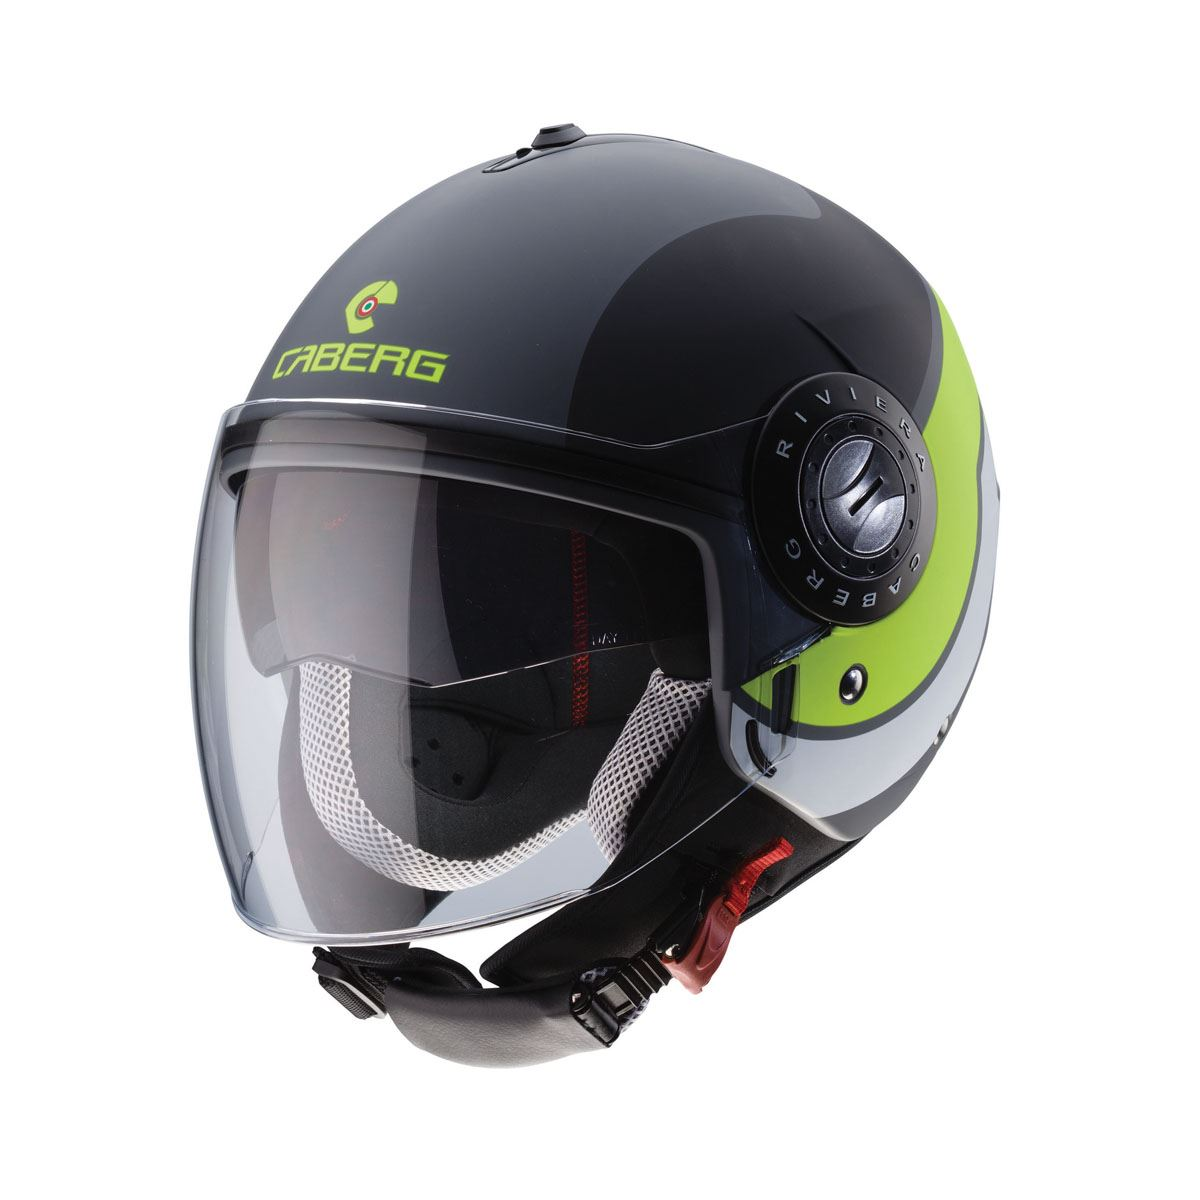 Caberg-Riviera-Open-Jet-Face-Motorcycle-Scooter-Ventilated-Helmet thumbnail 2